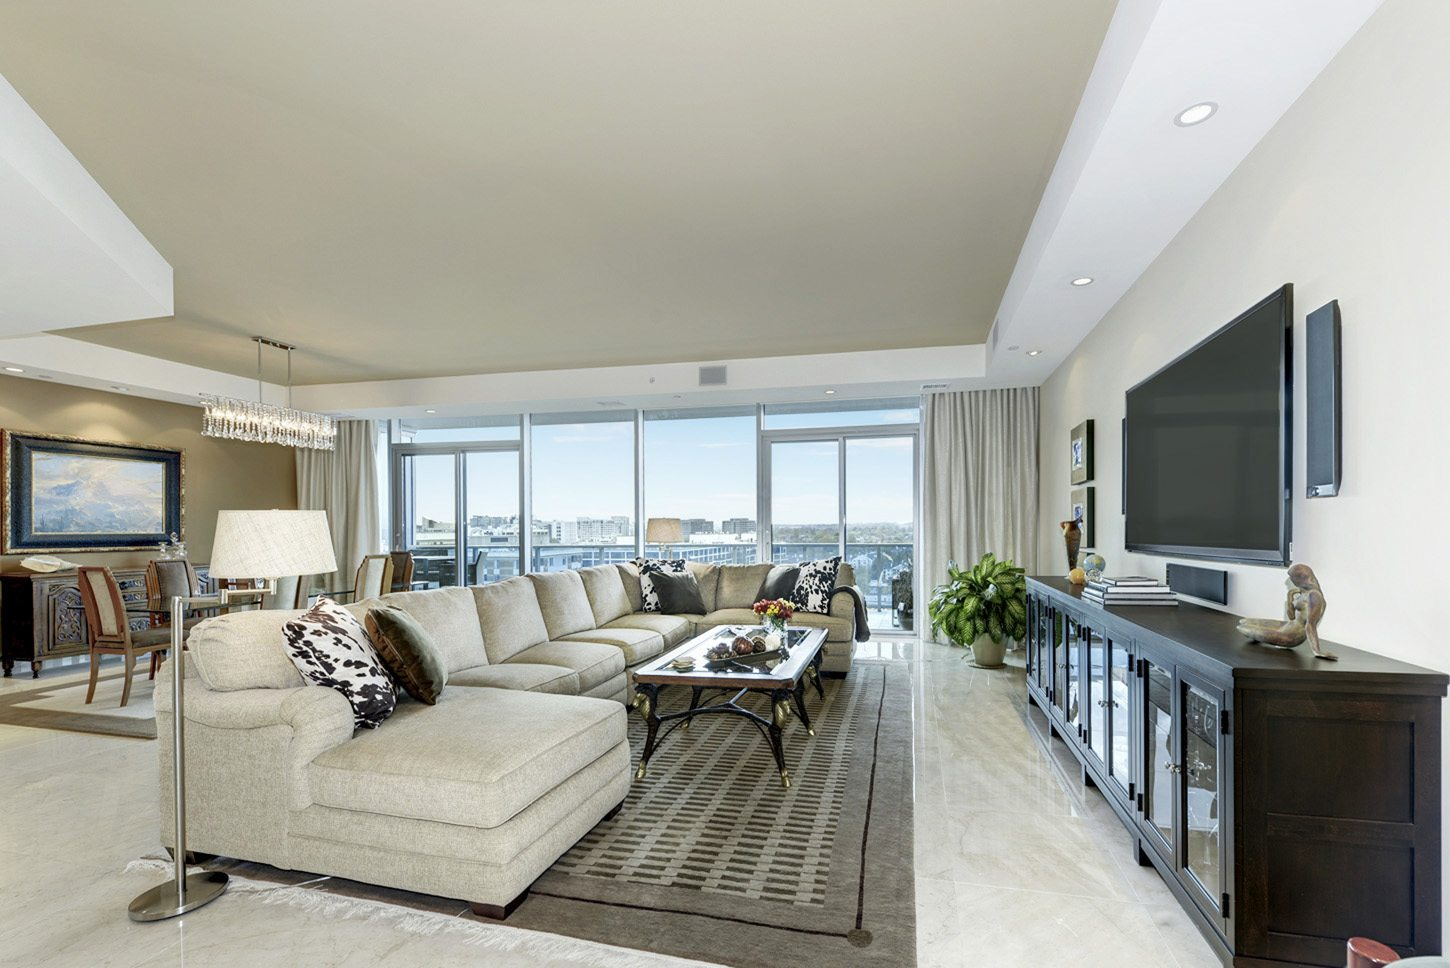 Private Placement Listings At Turnberry Tower, The Odyssey